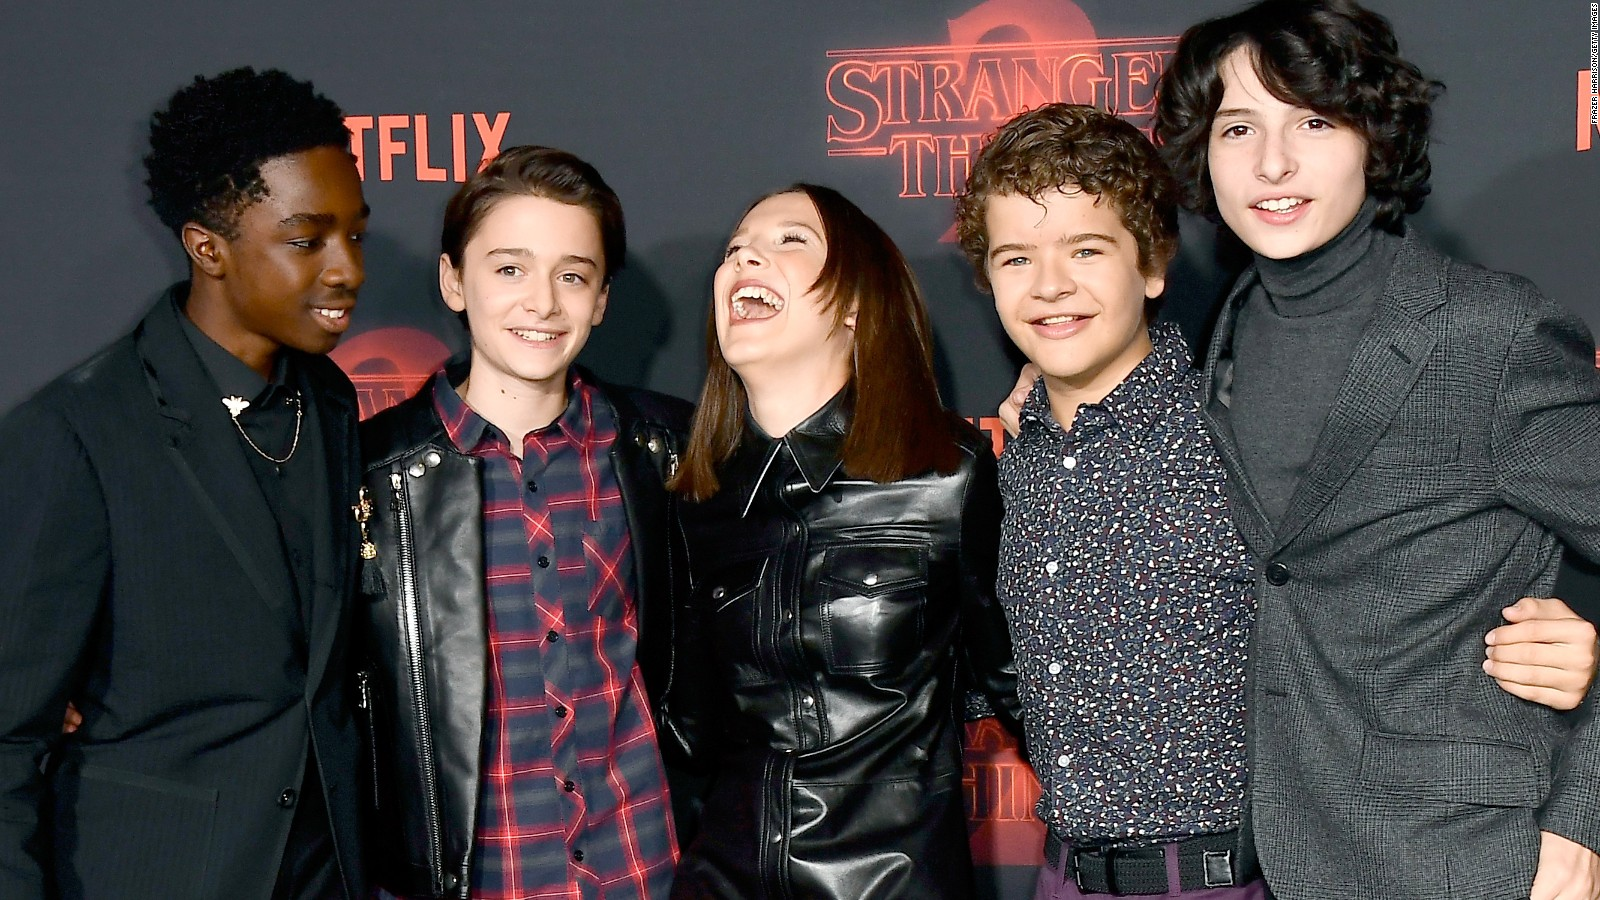 'Stranger Things' Season 3 is Officially in Production